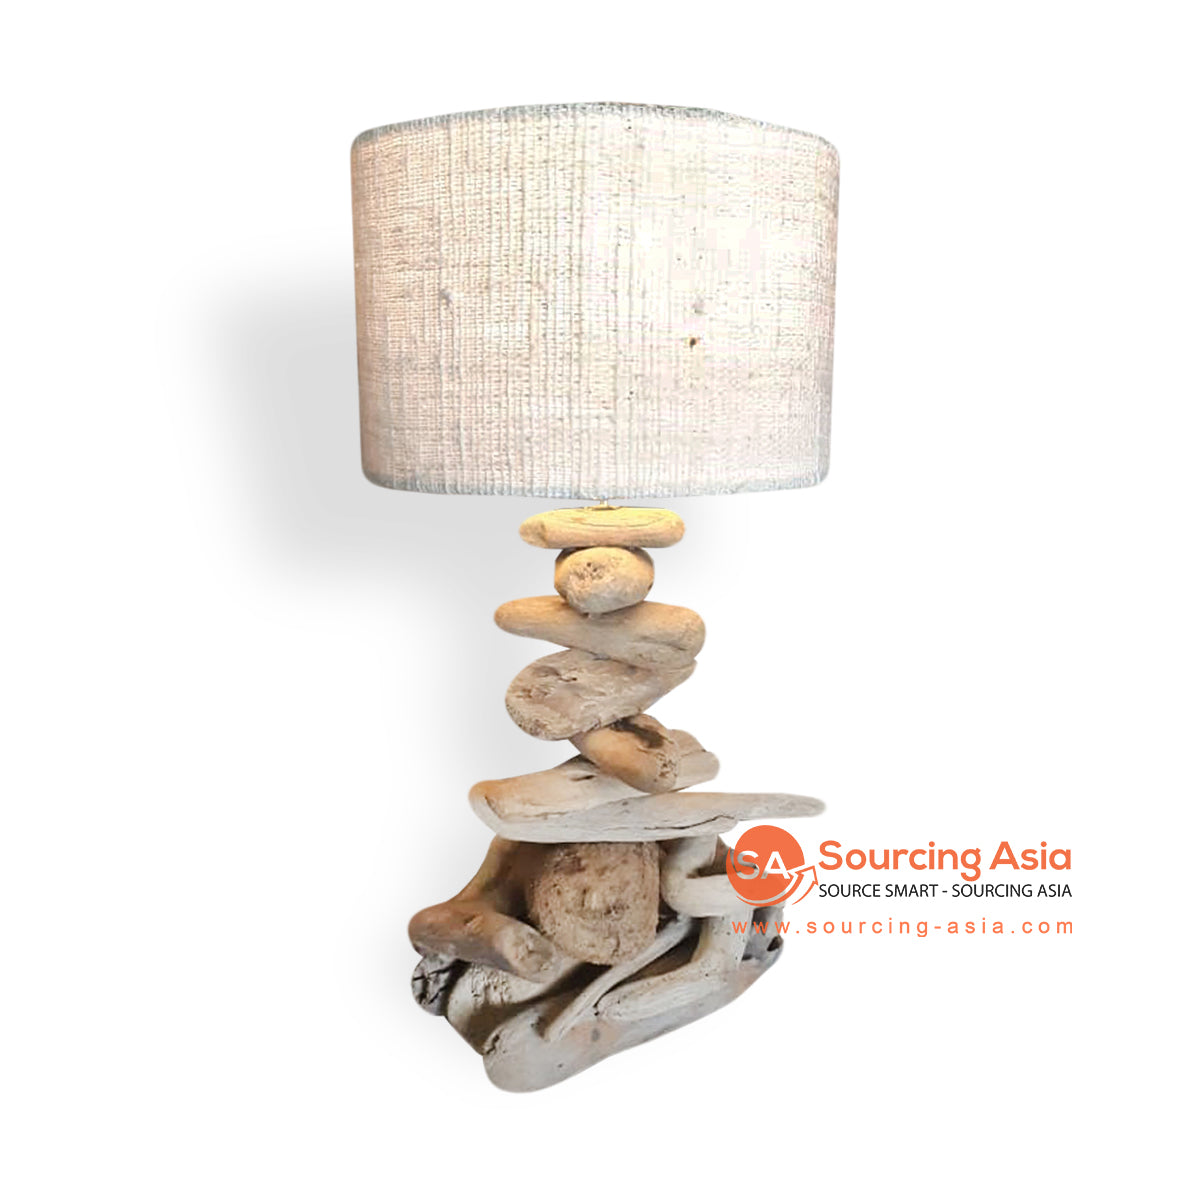 LB034 DRIFTWOOD LAMP WITH VINYL LAMP SHADE